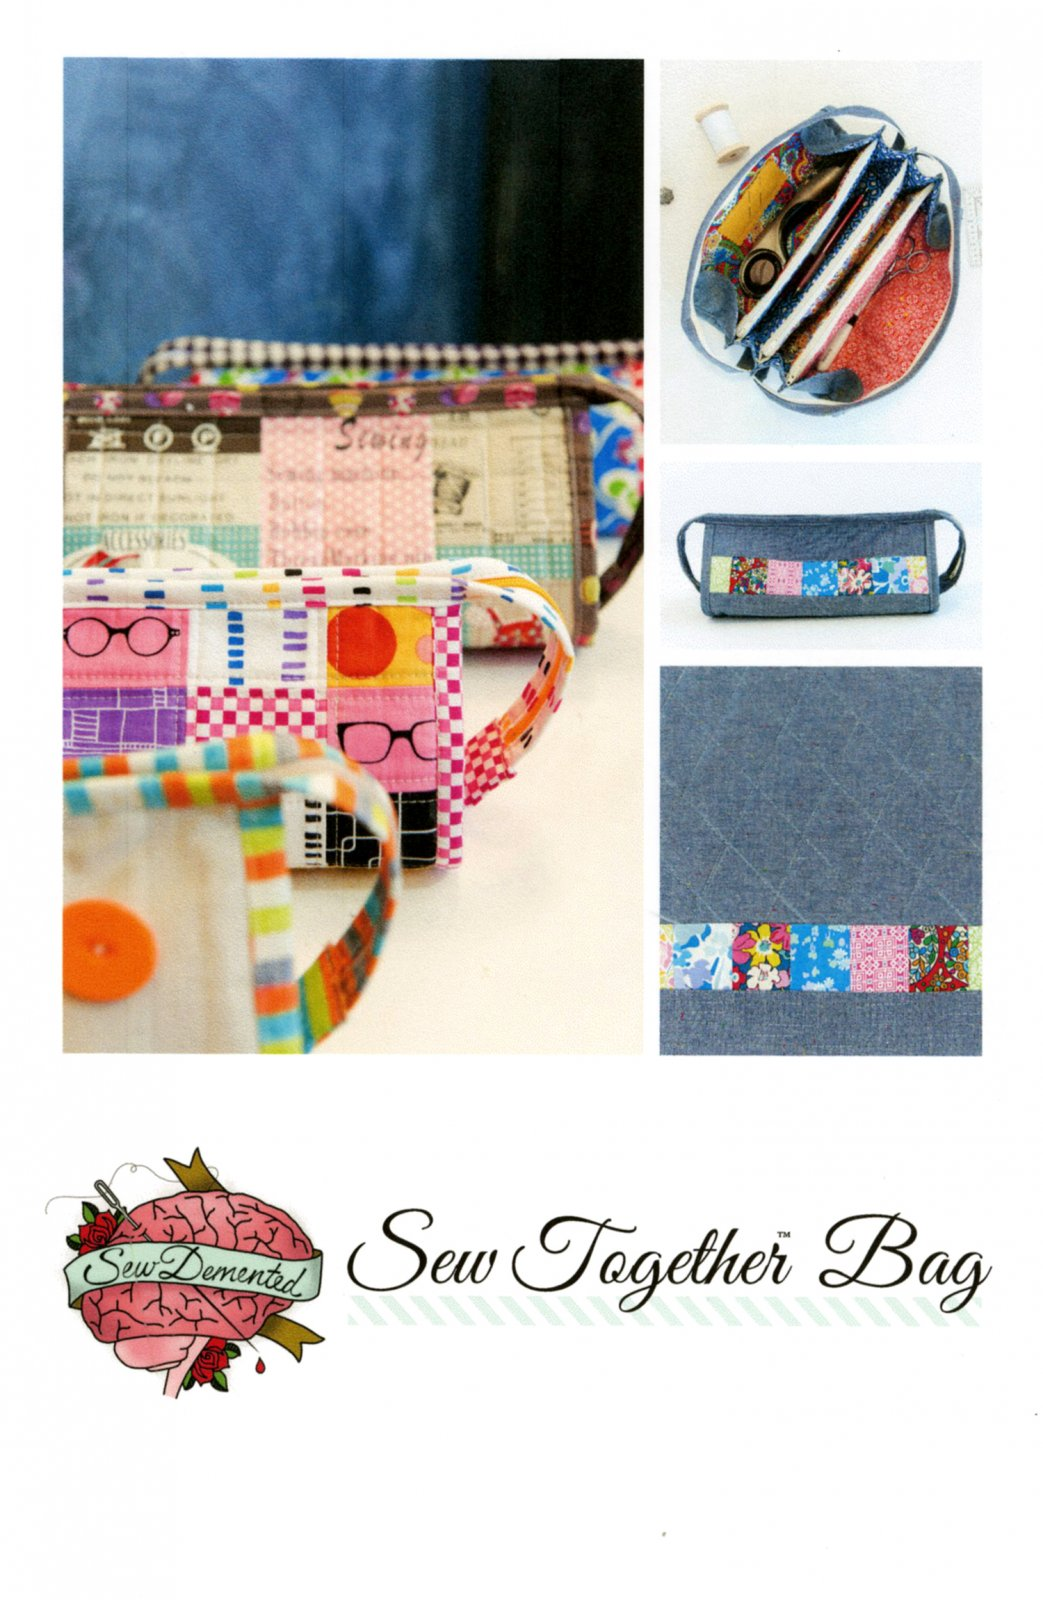 Sew Demented: Sew Together Bag